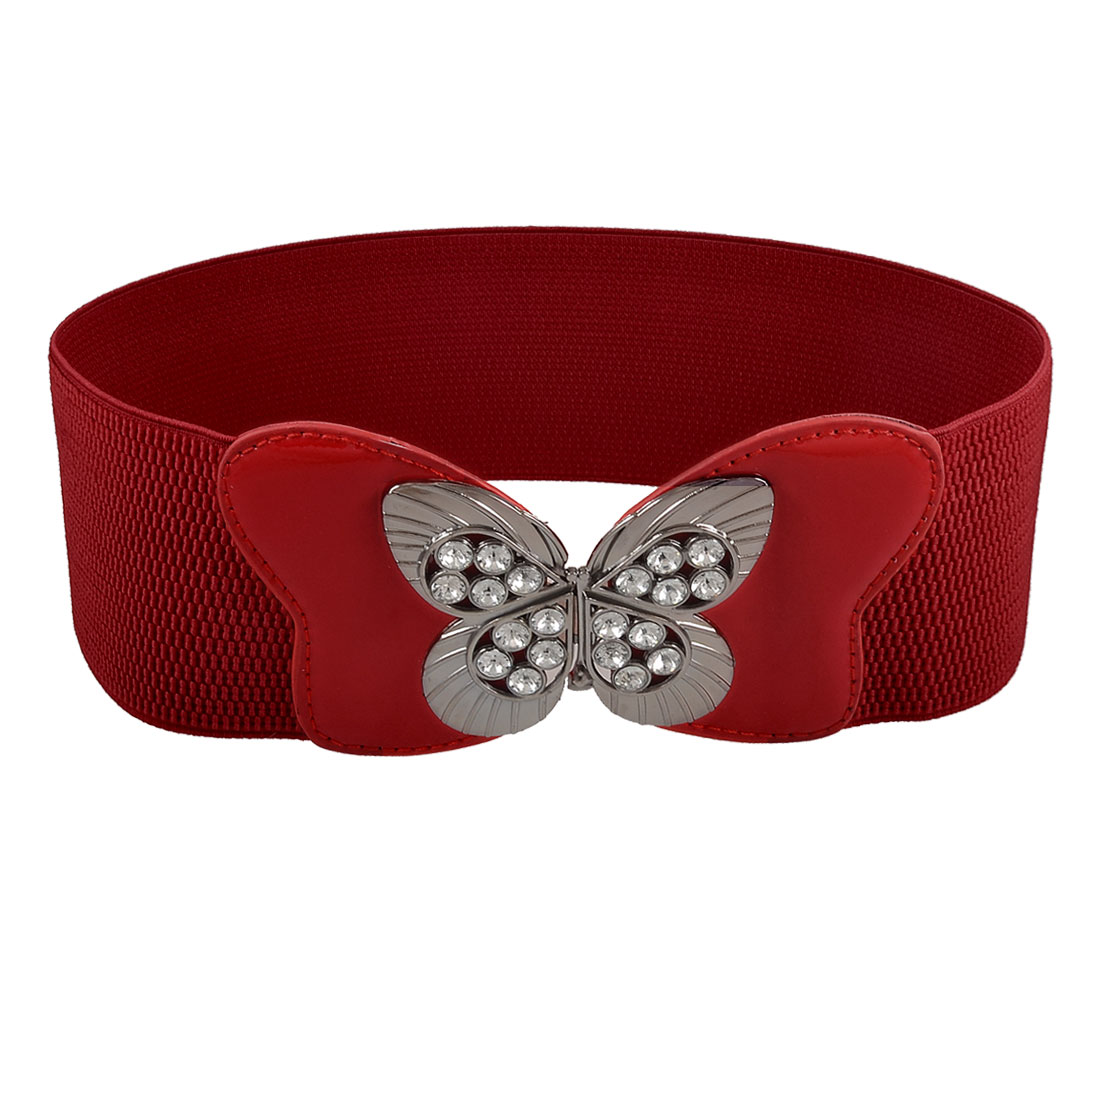 Hollow Butterfly Buckle Rhinestone Inlaid Red Stretchy Waistband for Lady